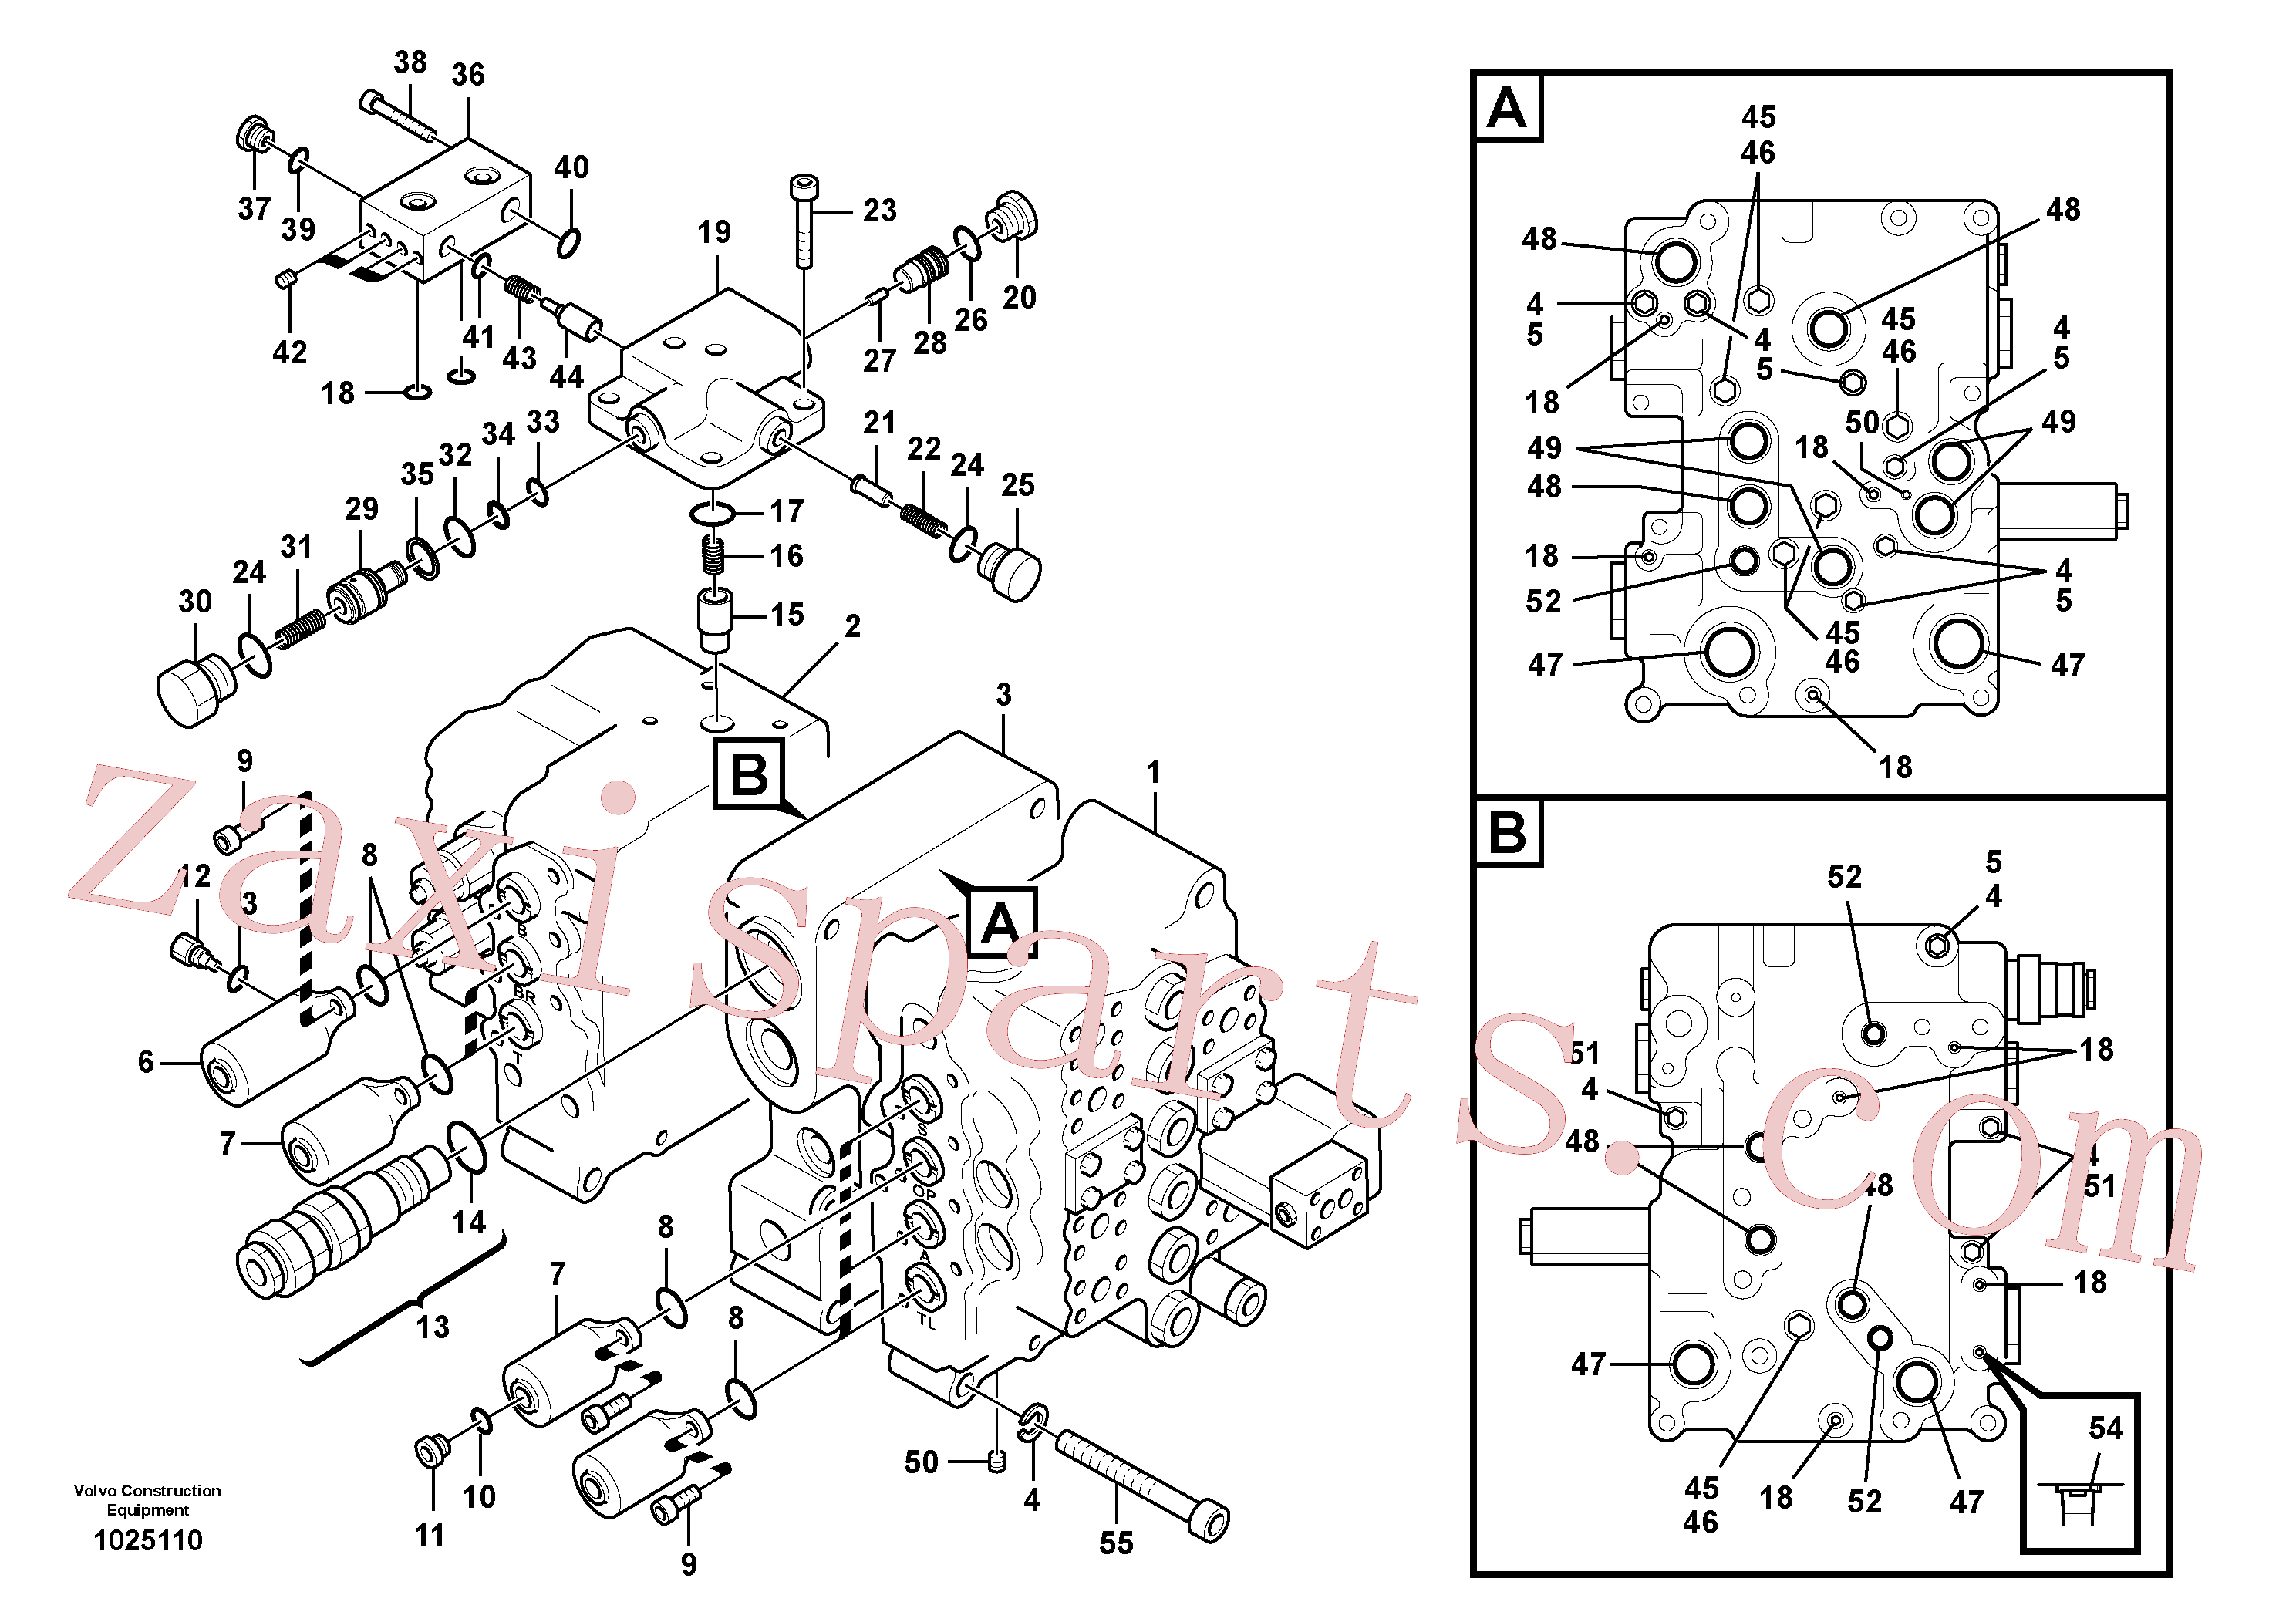 VOE14501805 for Volvo Main control valve, relief valve and boom holding(1025110 assembly)